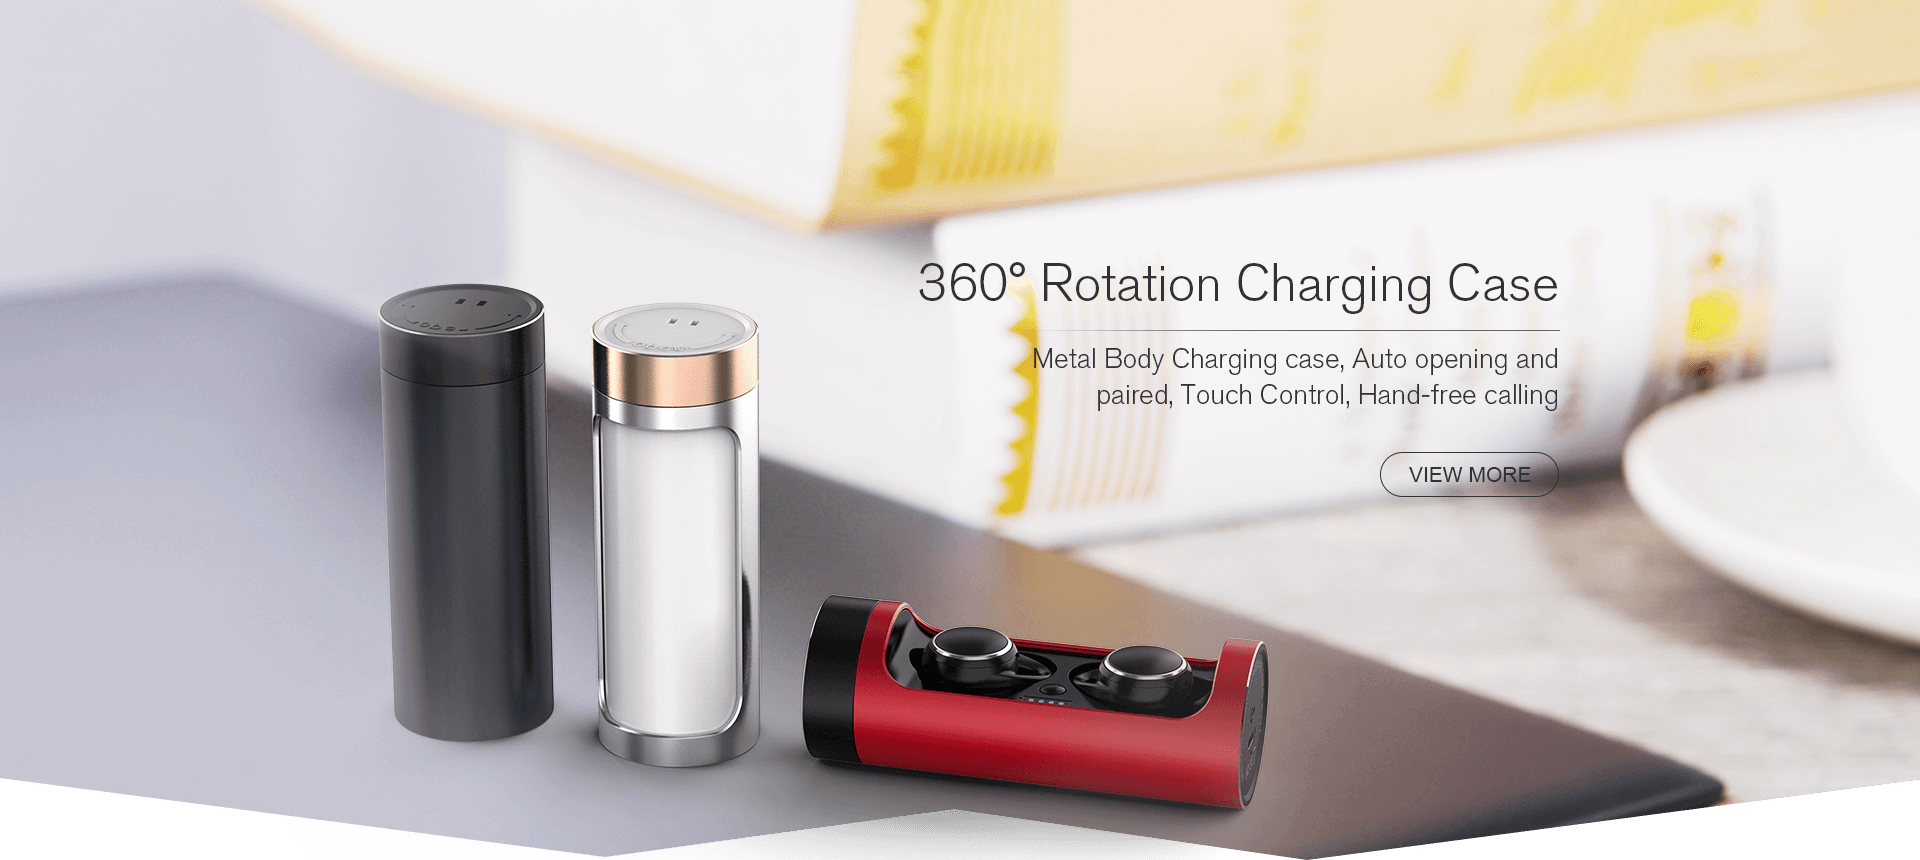 360° Rotation Charging Case